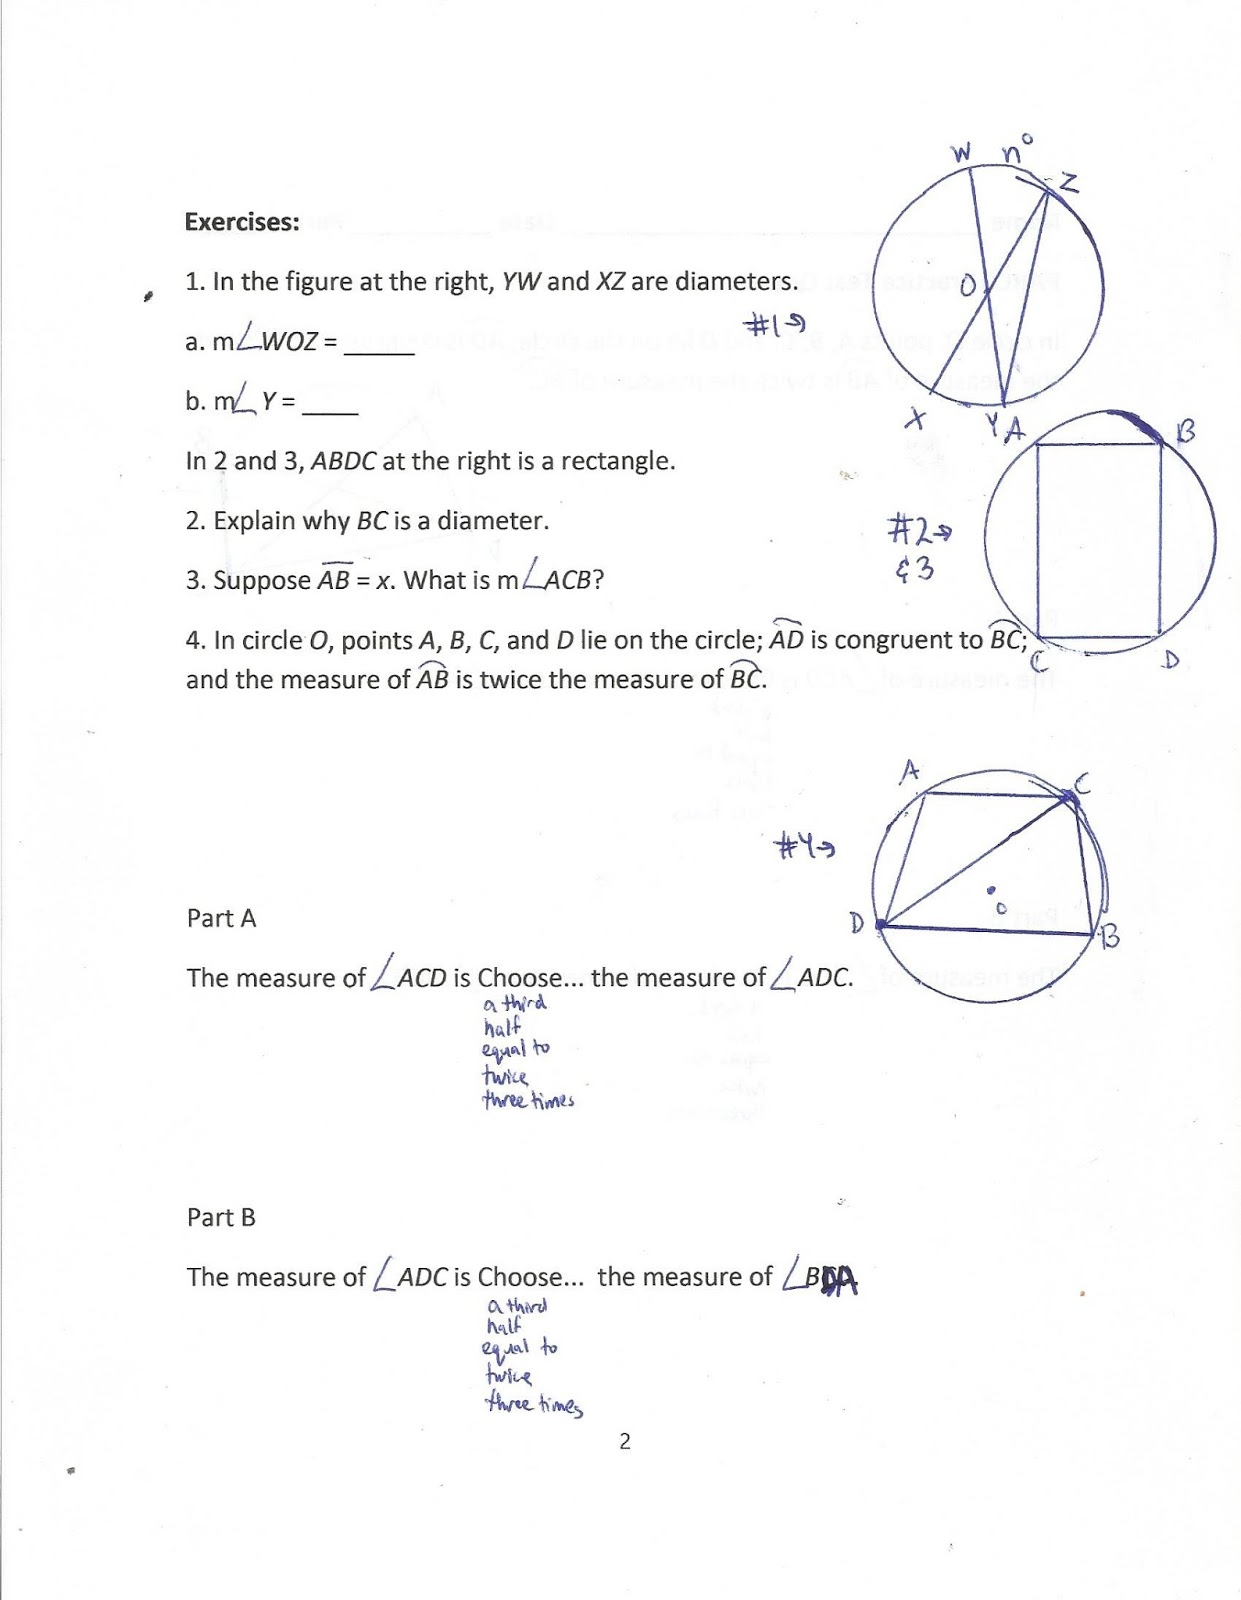 Question 9 from Lesson 15-3 and Question 33 from the SPUR Review for  Chapter 15 are two questions where the arc lengths and angle measures are  unknown.